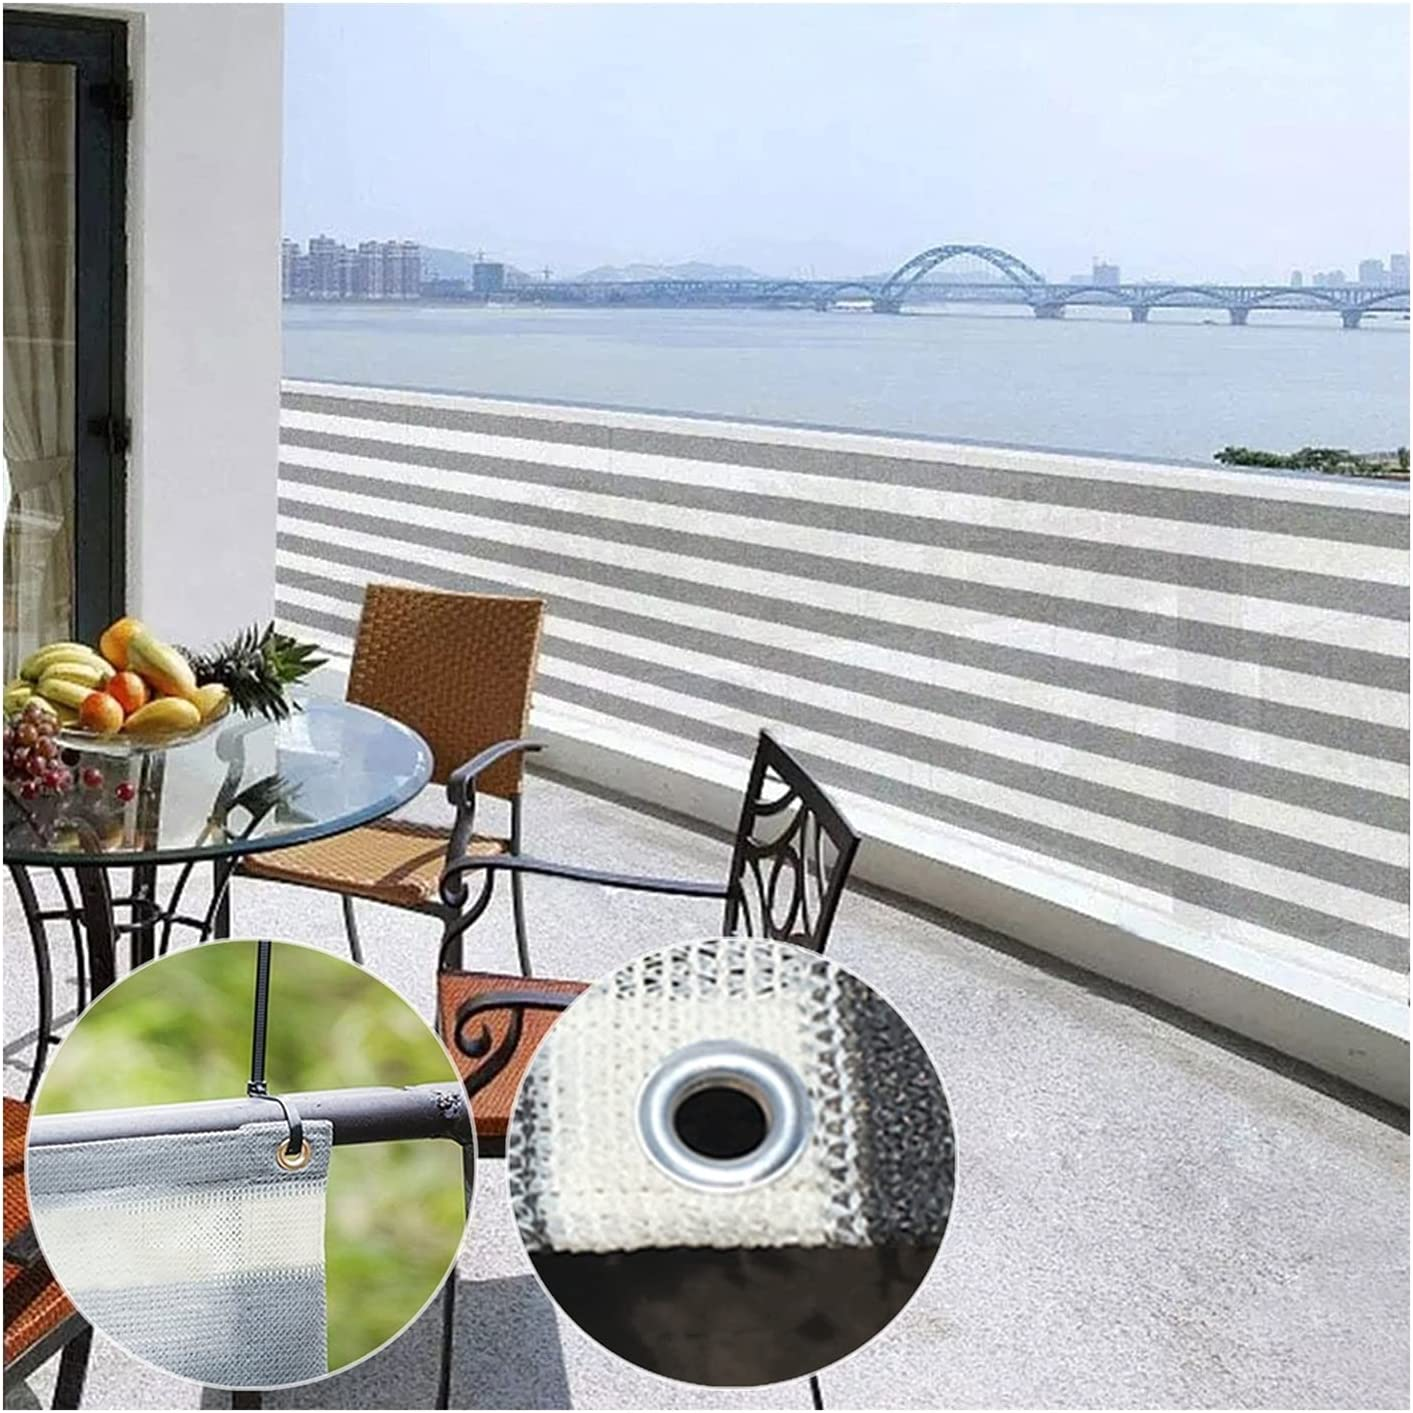 Shade Cloth Max 72% OFF Sunblock Shading Net Privacy New Orleans Mall Cover Protection Fence